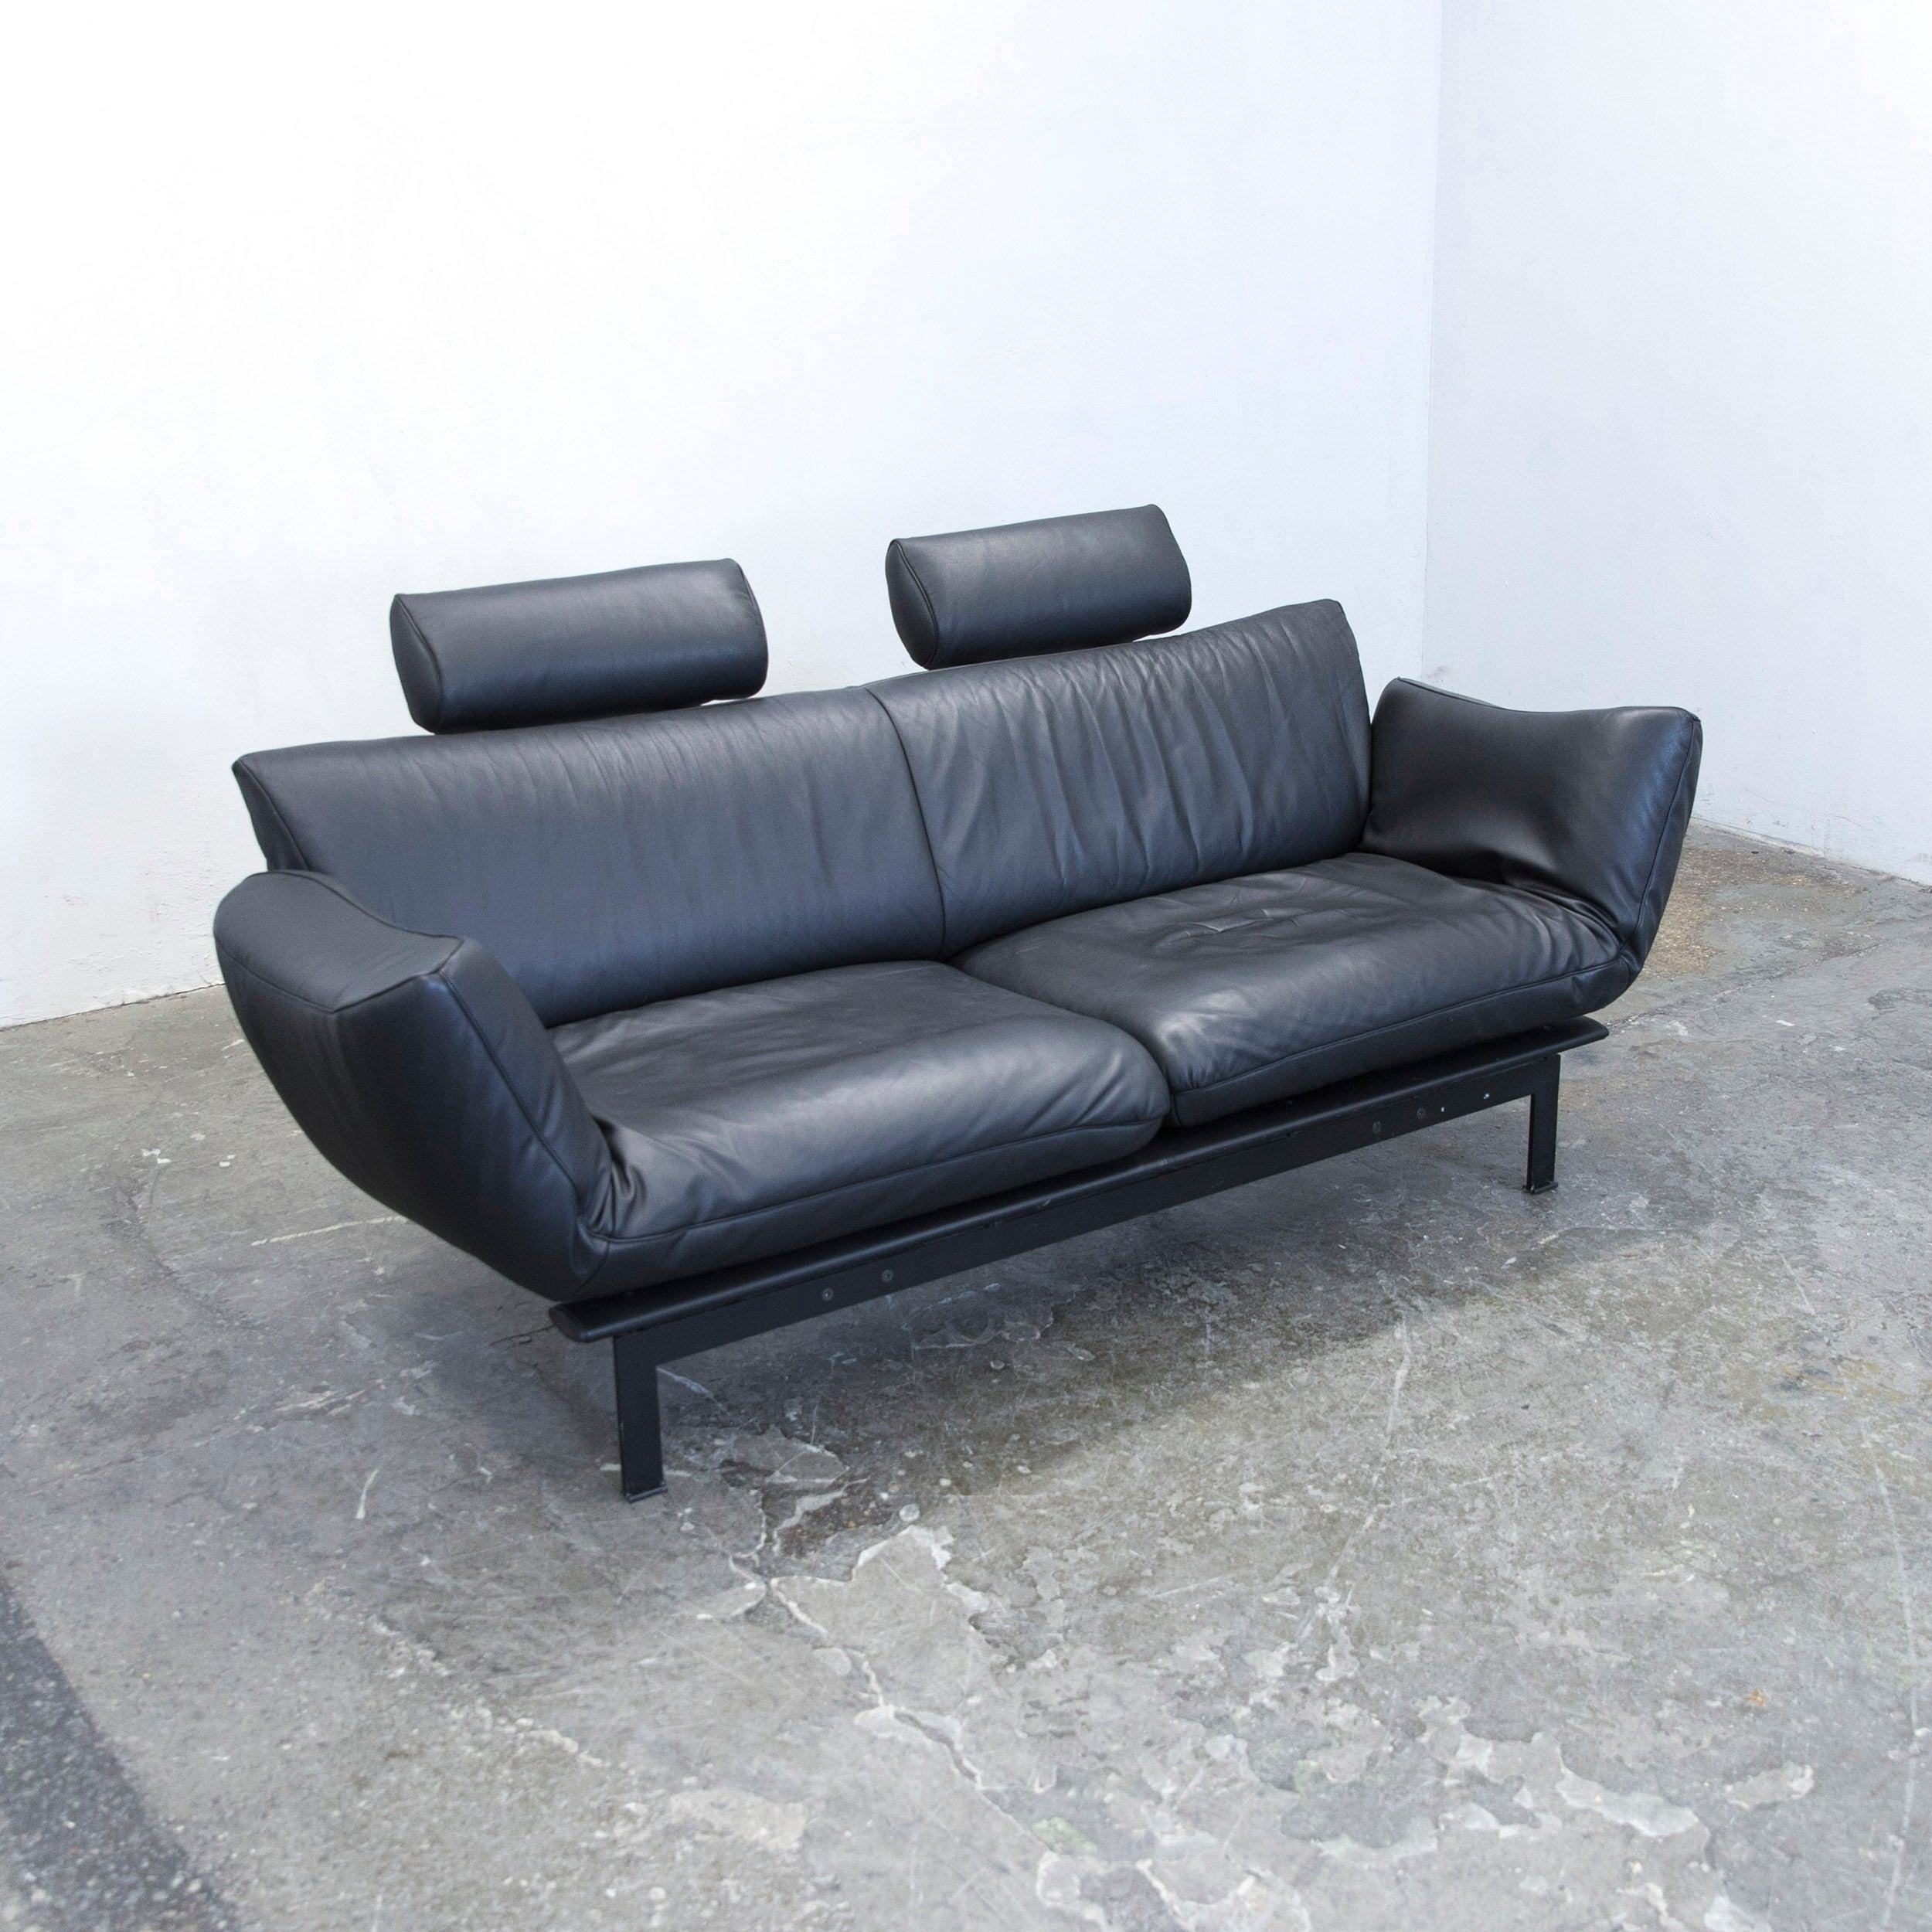 sofa gebraucht kaufen gallery of gro wohnzimmer sofa. Black Bedroom Furniture Sets. Home Design Ideas